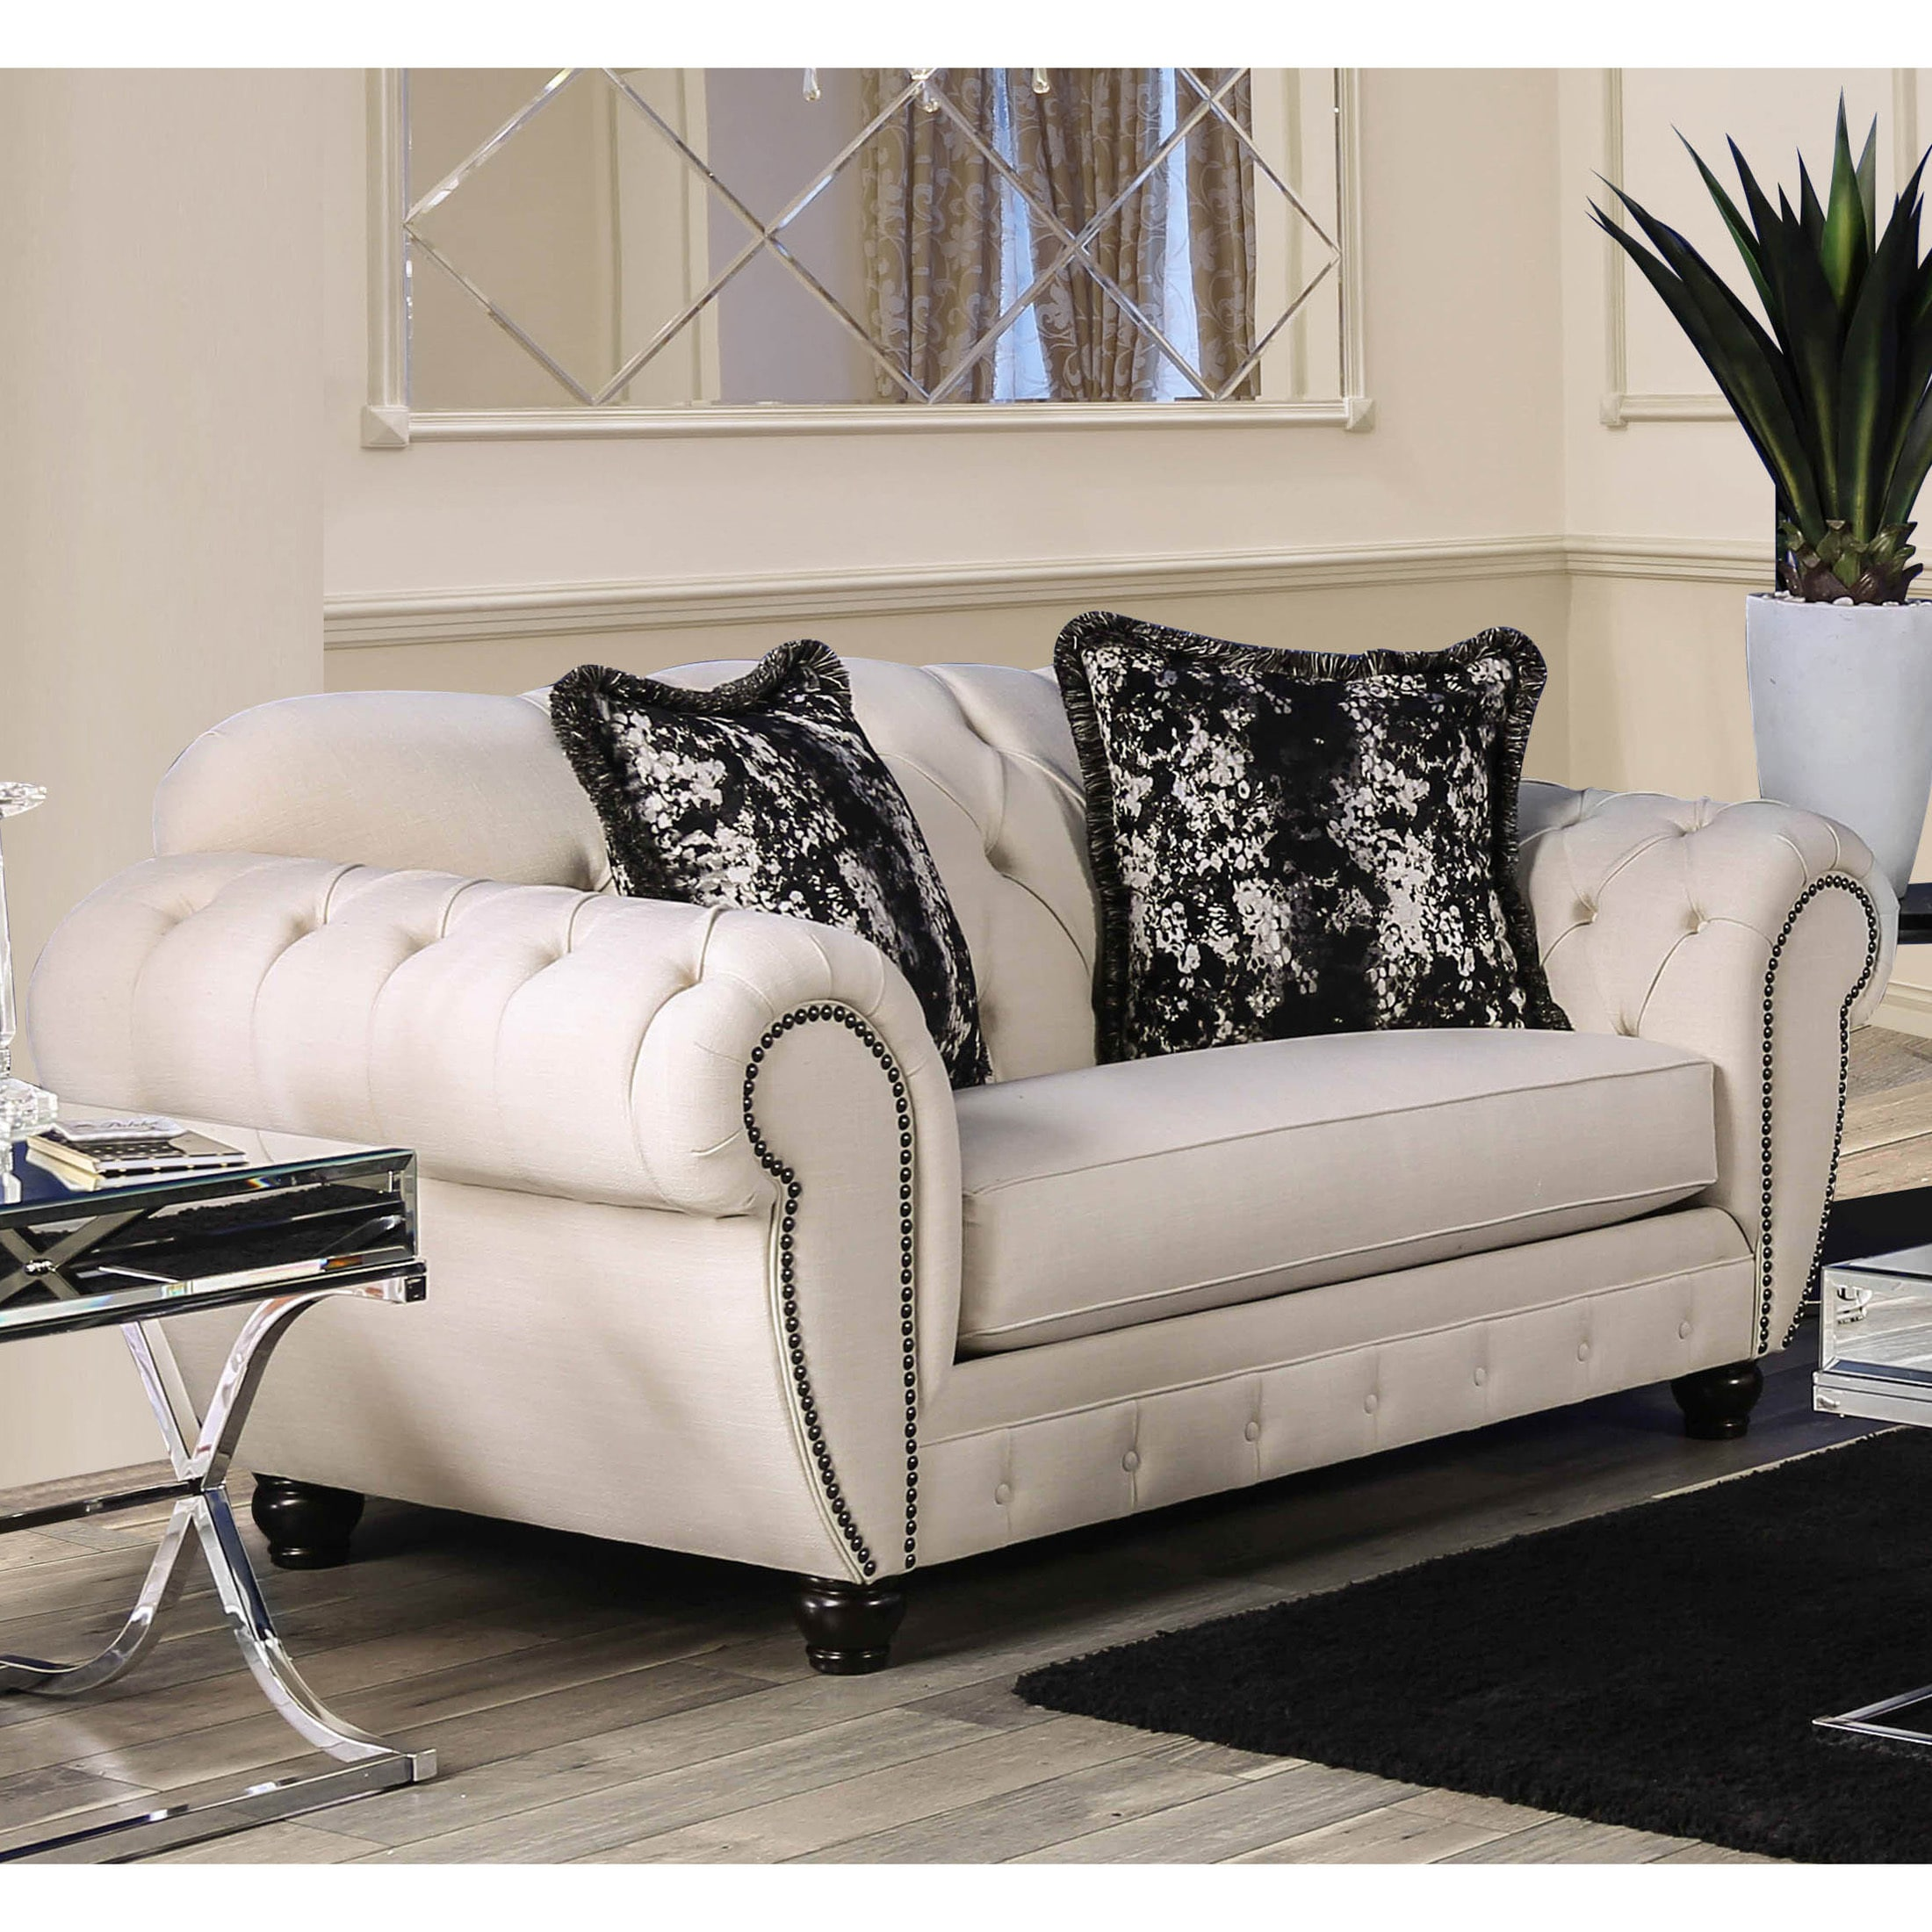 loveseat tufted and plum products new velvet arms pin arm melaina scroll